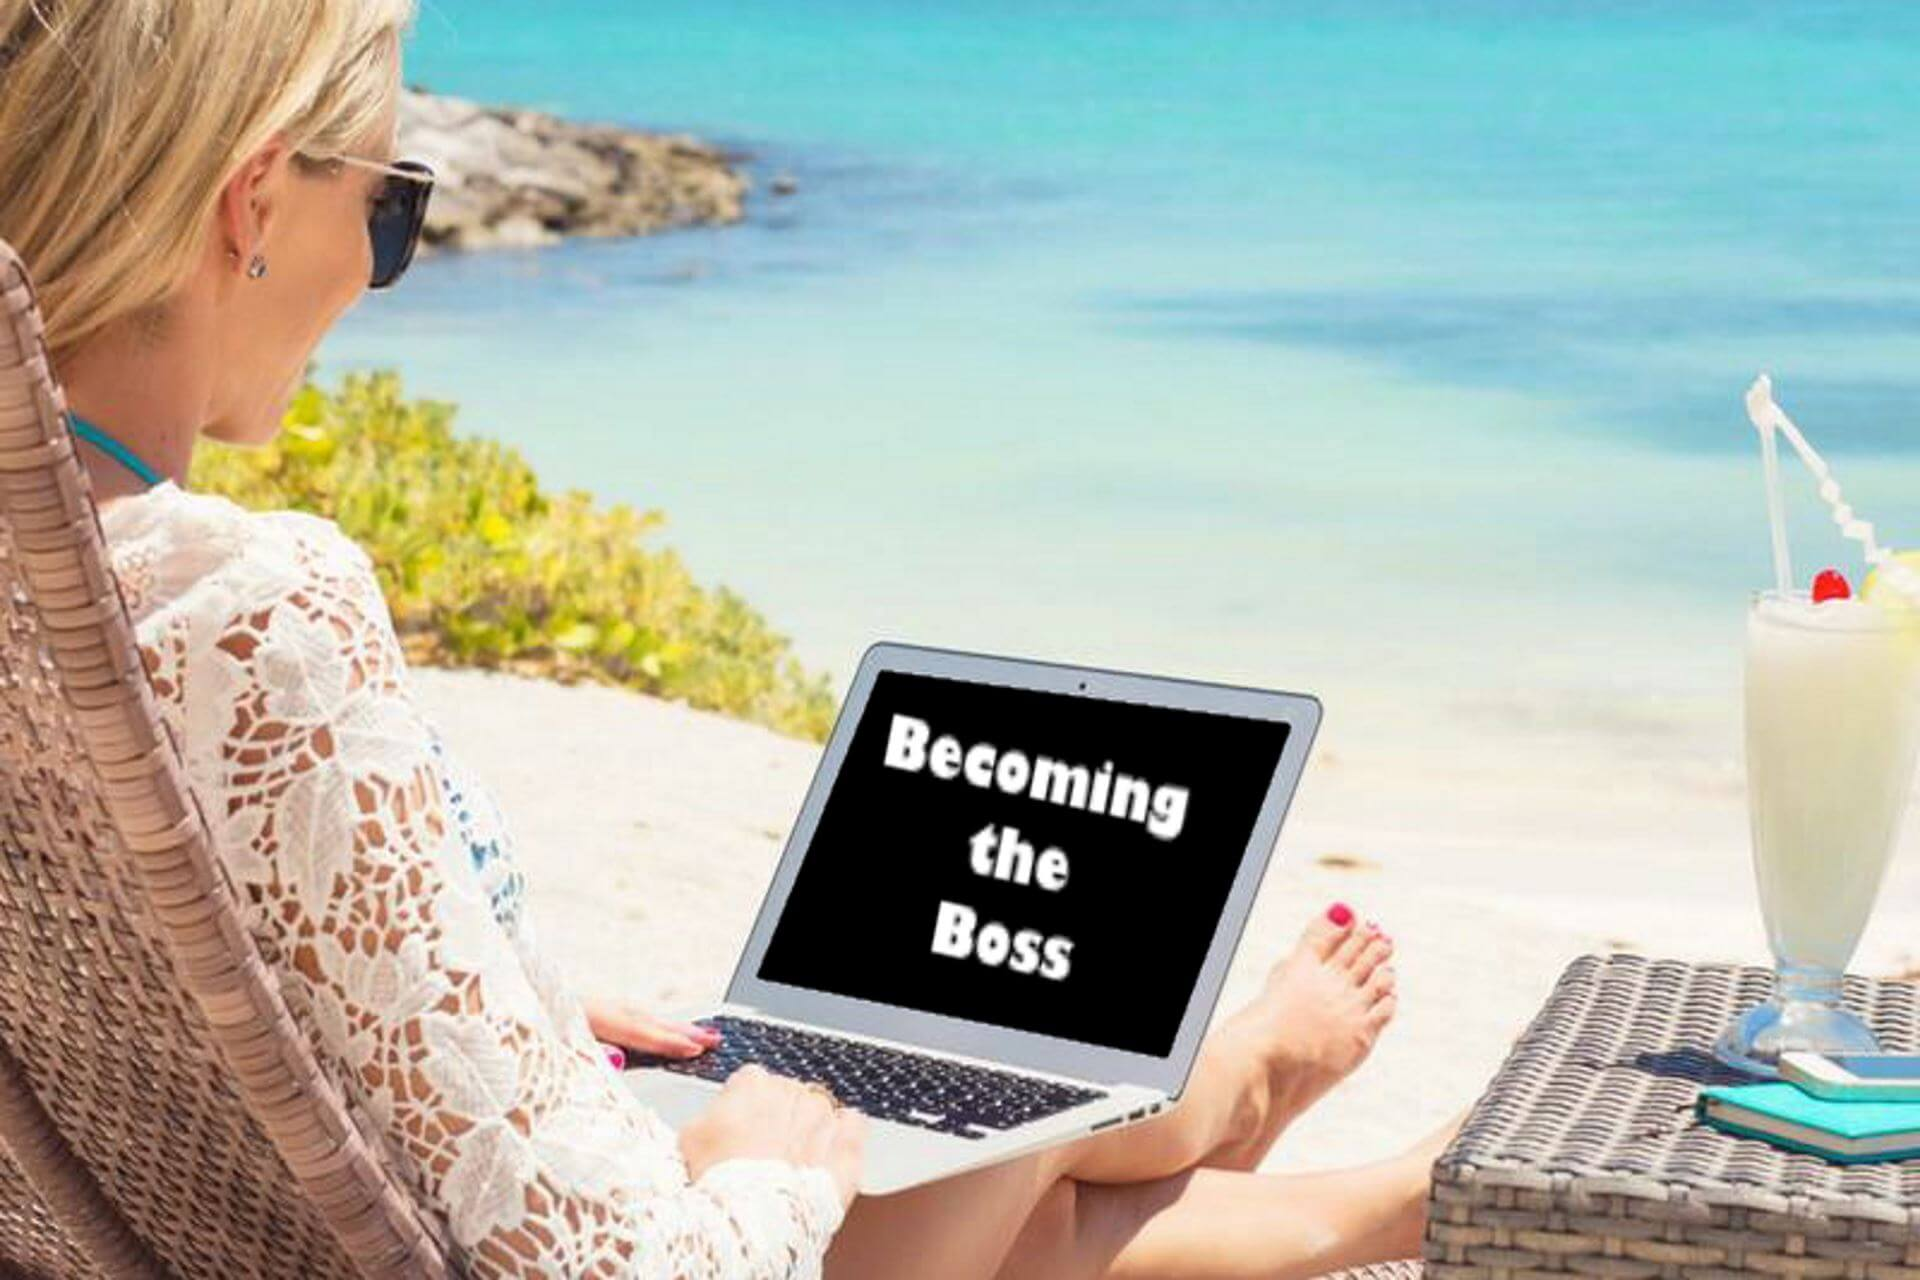 Becoming the Boss 2